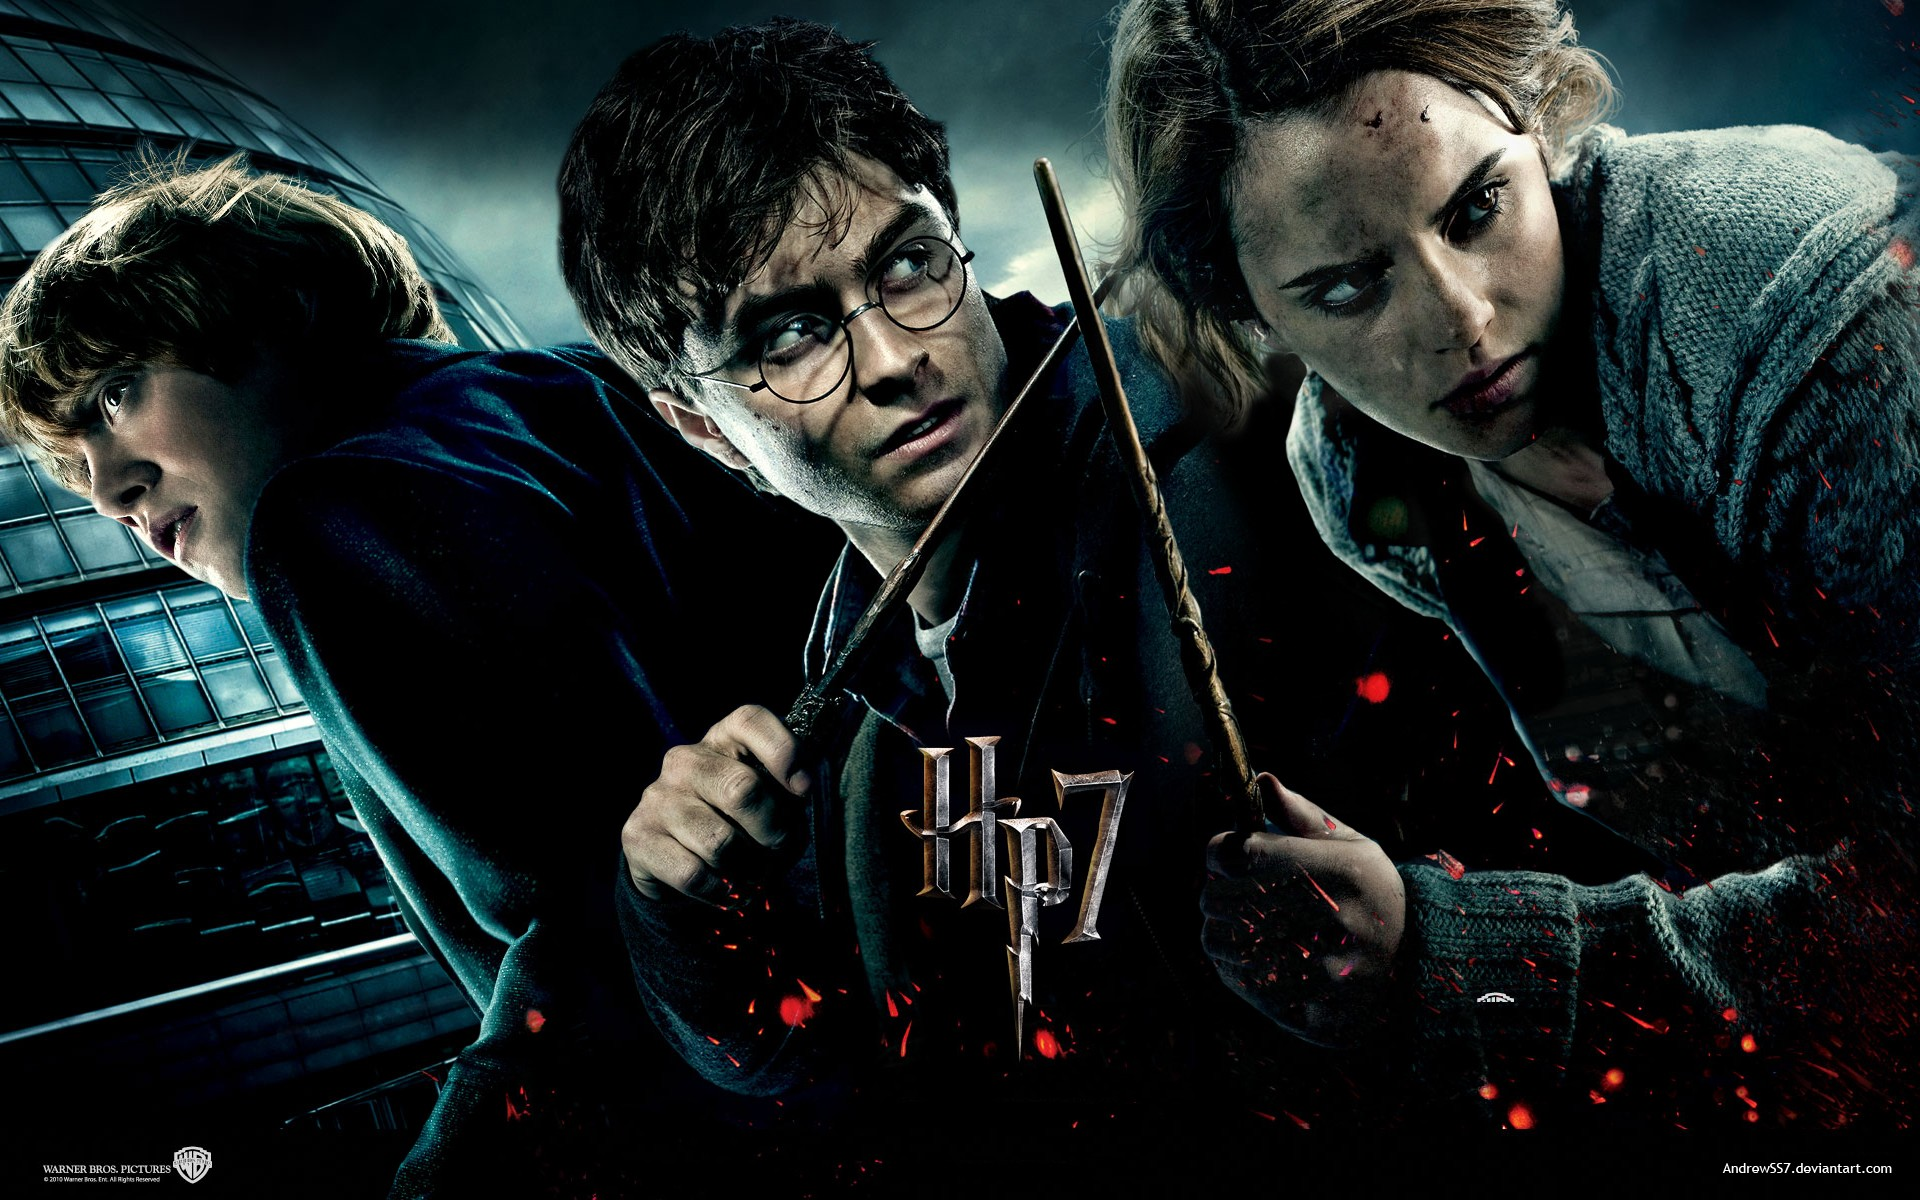 I hated the Harry Potter movie franchise. But then I binge-watched all 8 movies